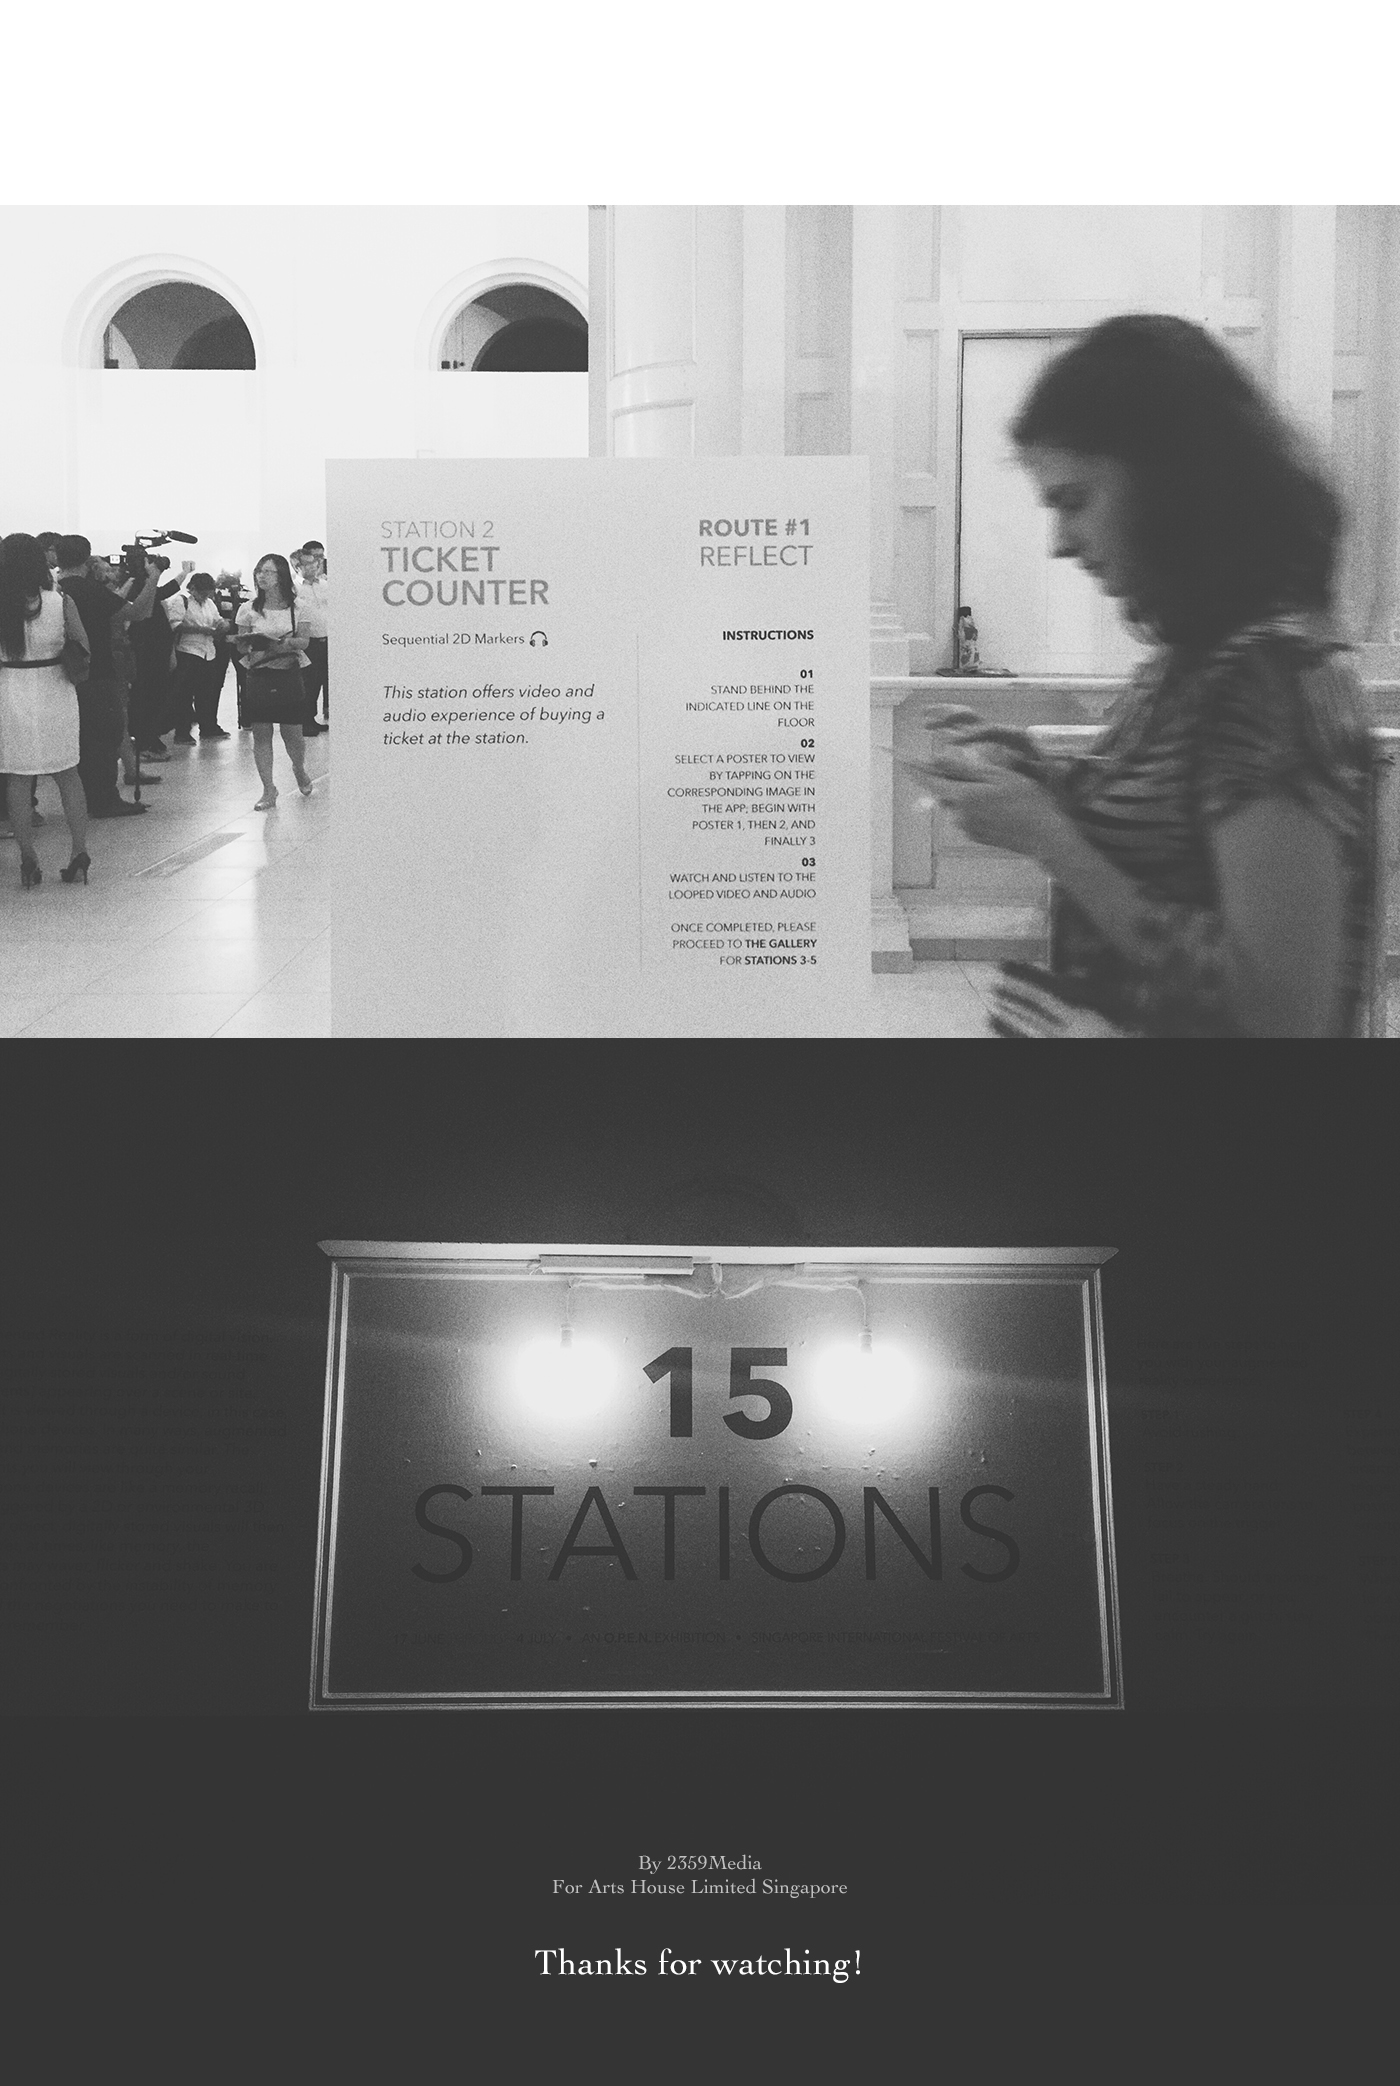 sifa SIFA 2015 the O.P.E.N. tanjong pager railway STATION railway station 15 stations Singapore International Festival of arts